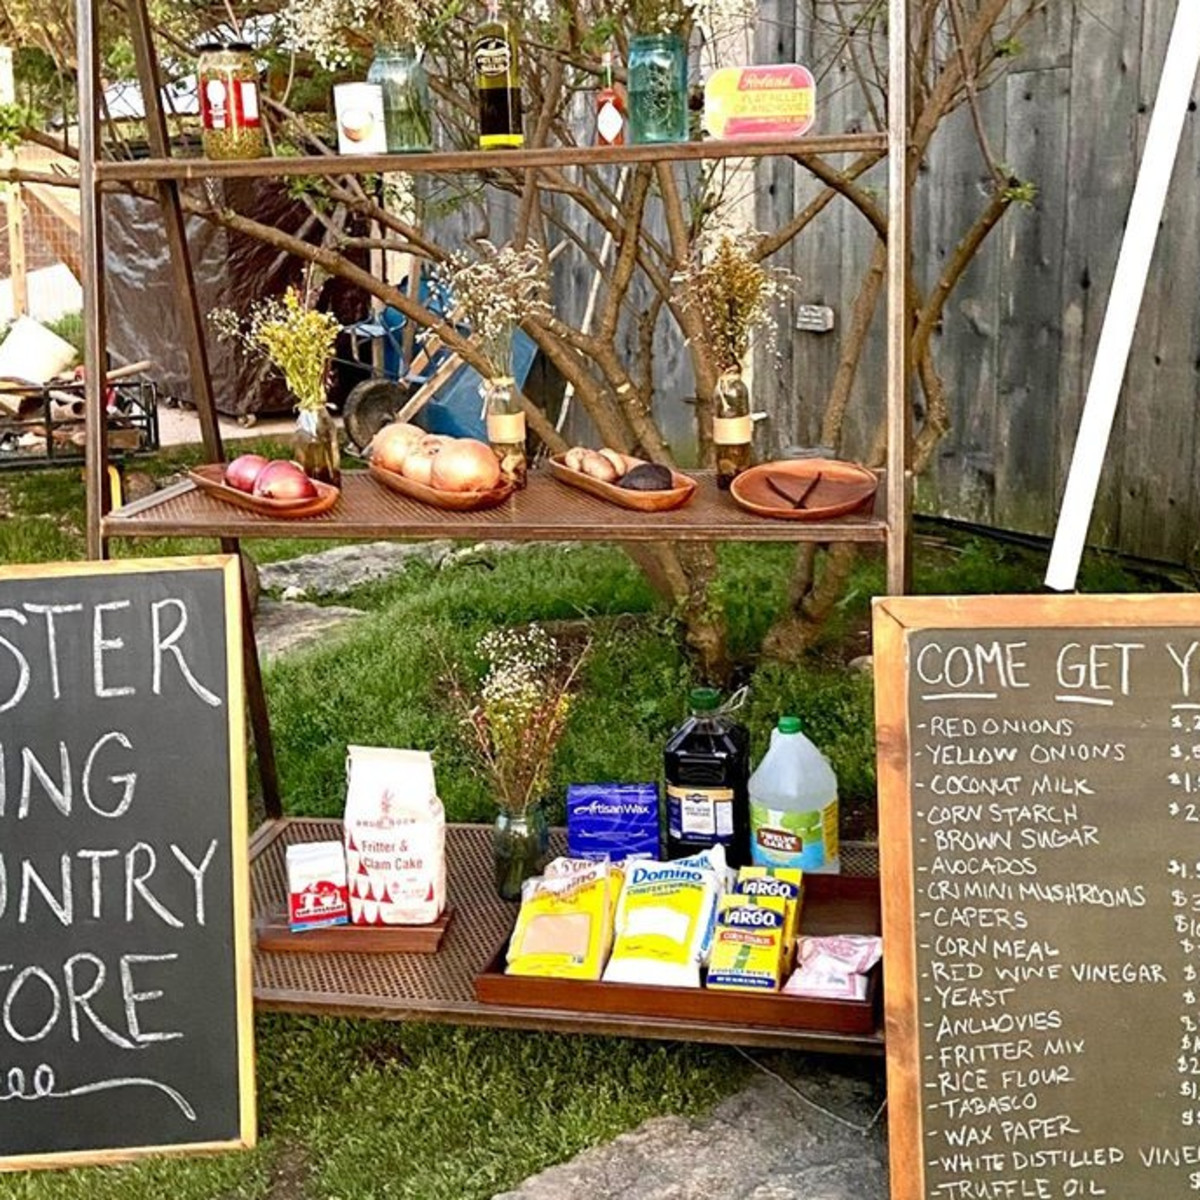 Jester King Country store